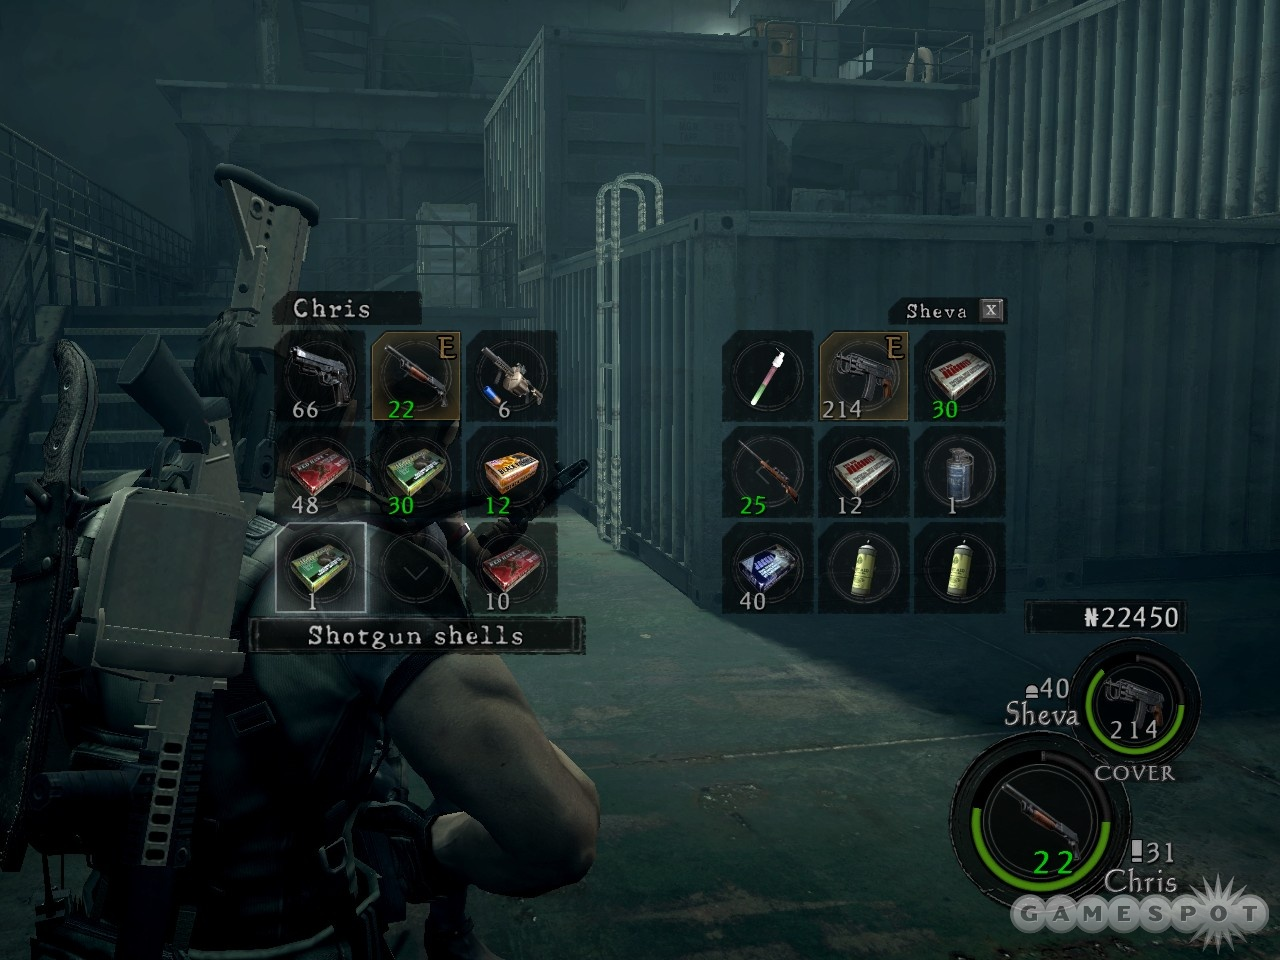 Inventory management is easier than ever when you can click and drag items around with your mouse.